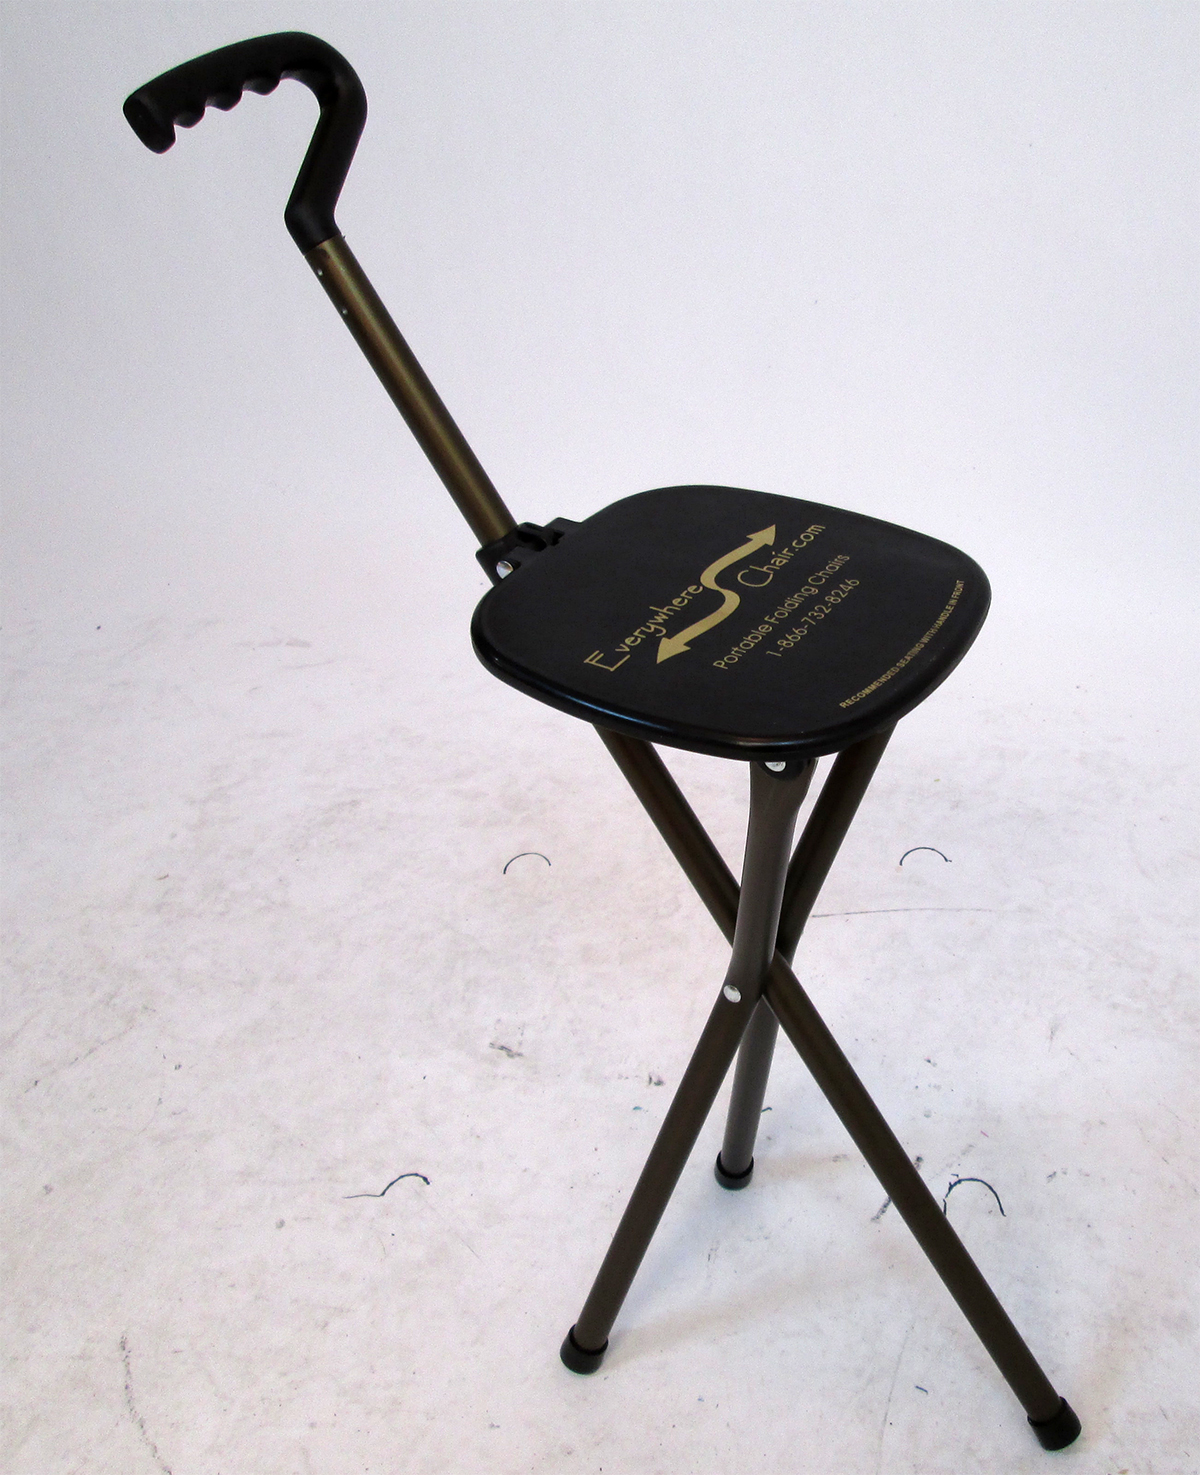 Sport Seat Mini Executive Walking Stick Portable Seat